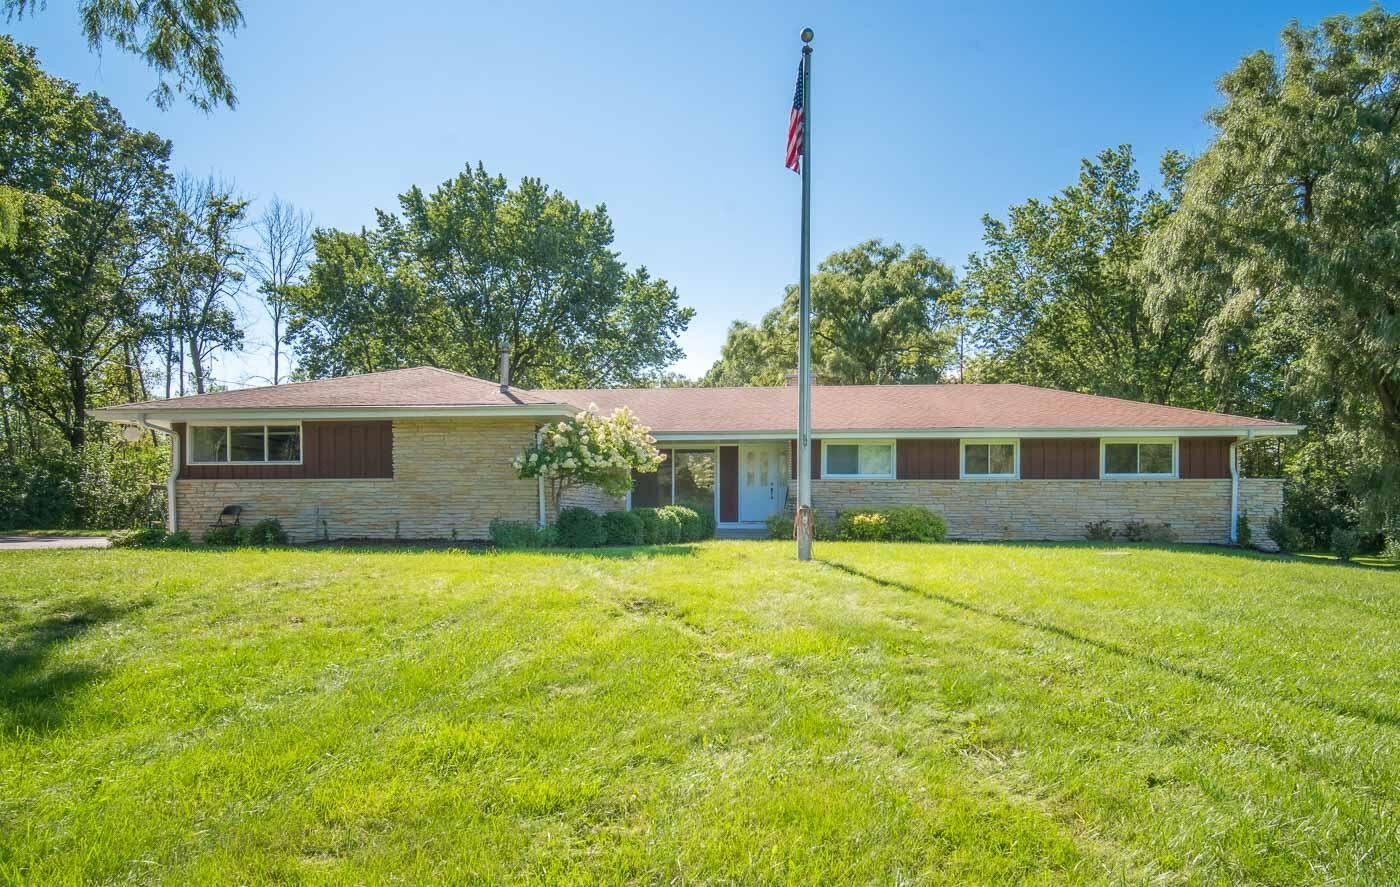 13717 N Lake Shore Dr, Mequon, WI 53097 - #: 1761318